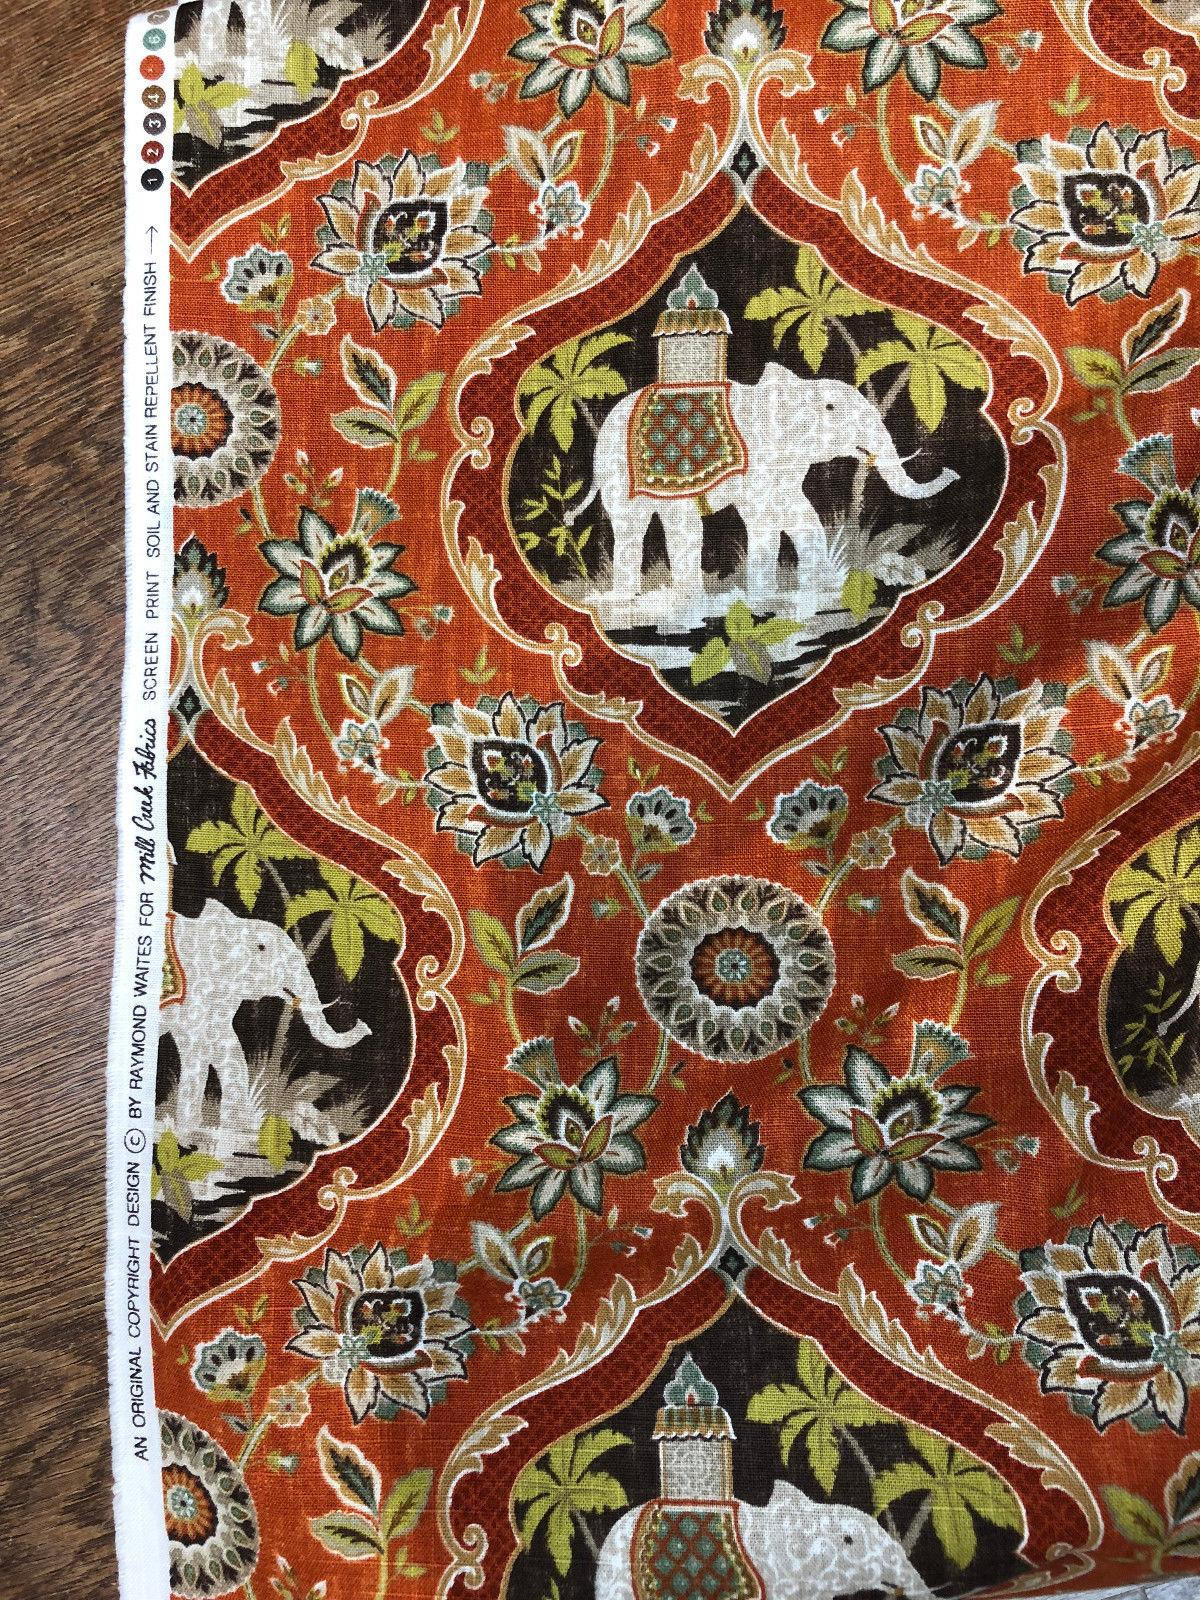 Sanaya Elephants Paprika Swavelle Mill Creek Upholstery Fabric By